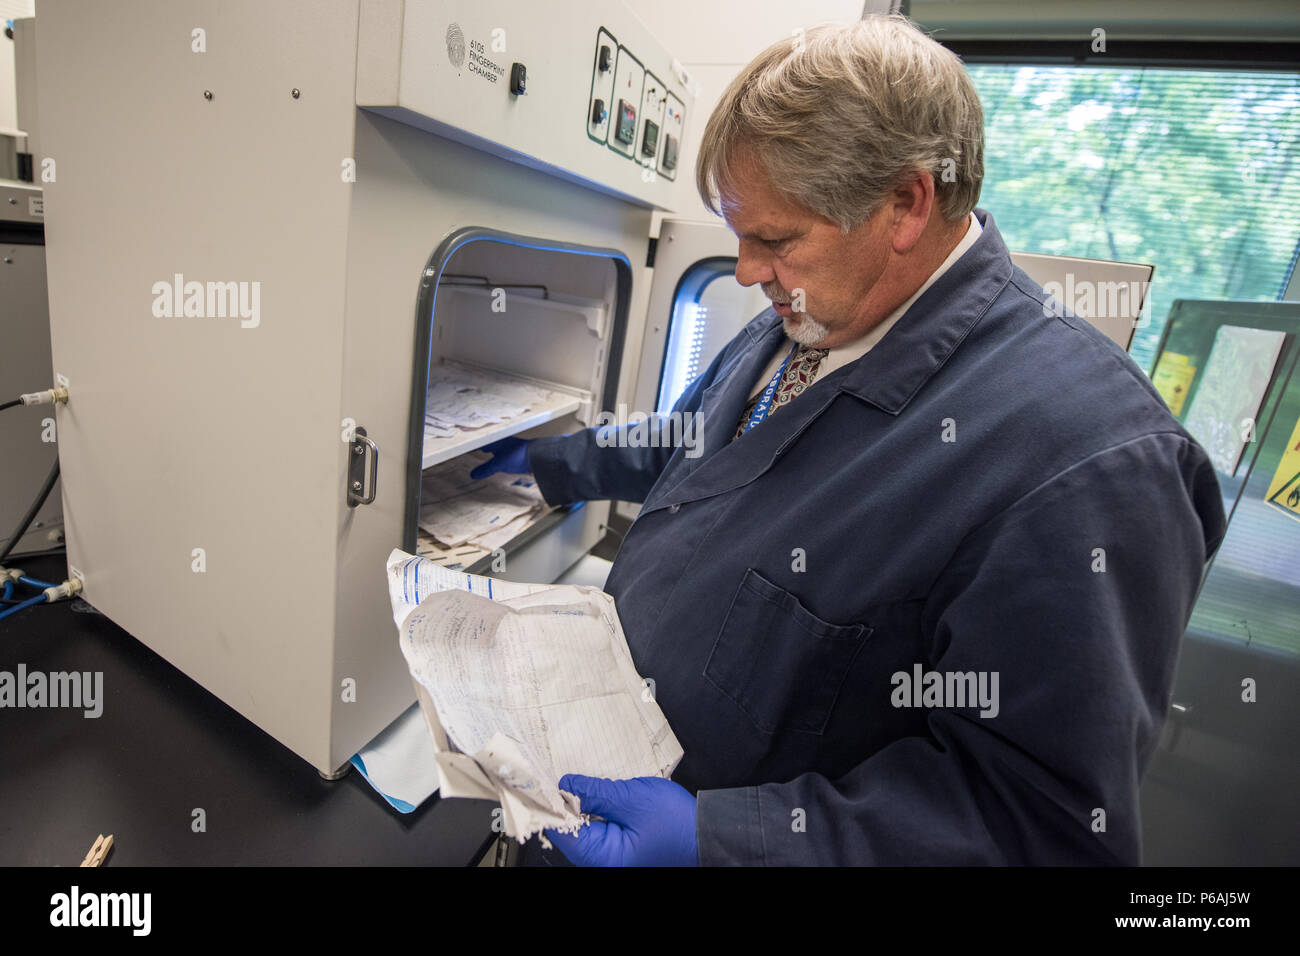 EMBARGOED UNTIL 1:00 PM EASTERN, JULY 20, 2016. U.S. Department of Homeland Security and Immigration and Customs Enforcement (ICE) unveil a major renovation of the ICE Homeland Security Investigations (HSI) Forensic Laboratory in Tyson's Corner, VA - Stock Image